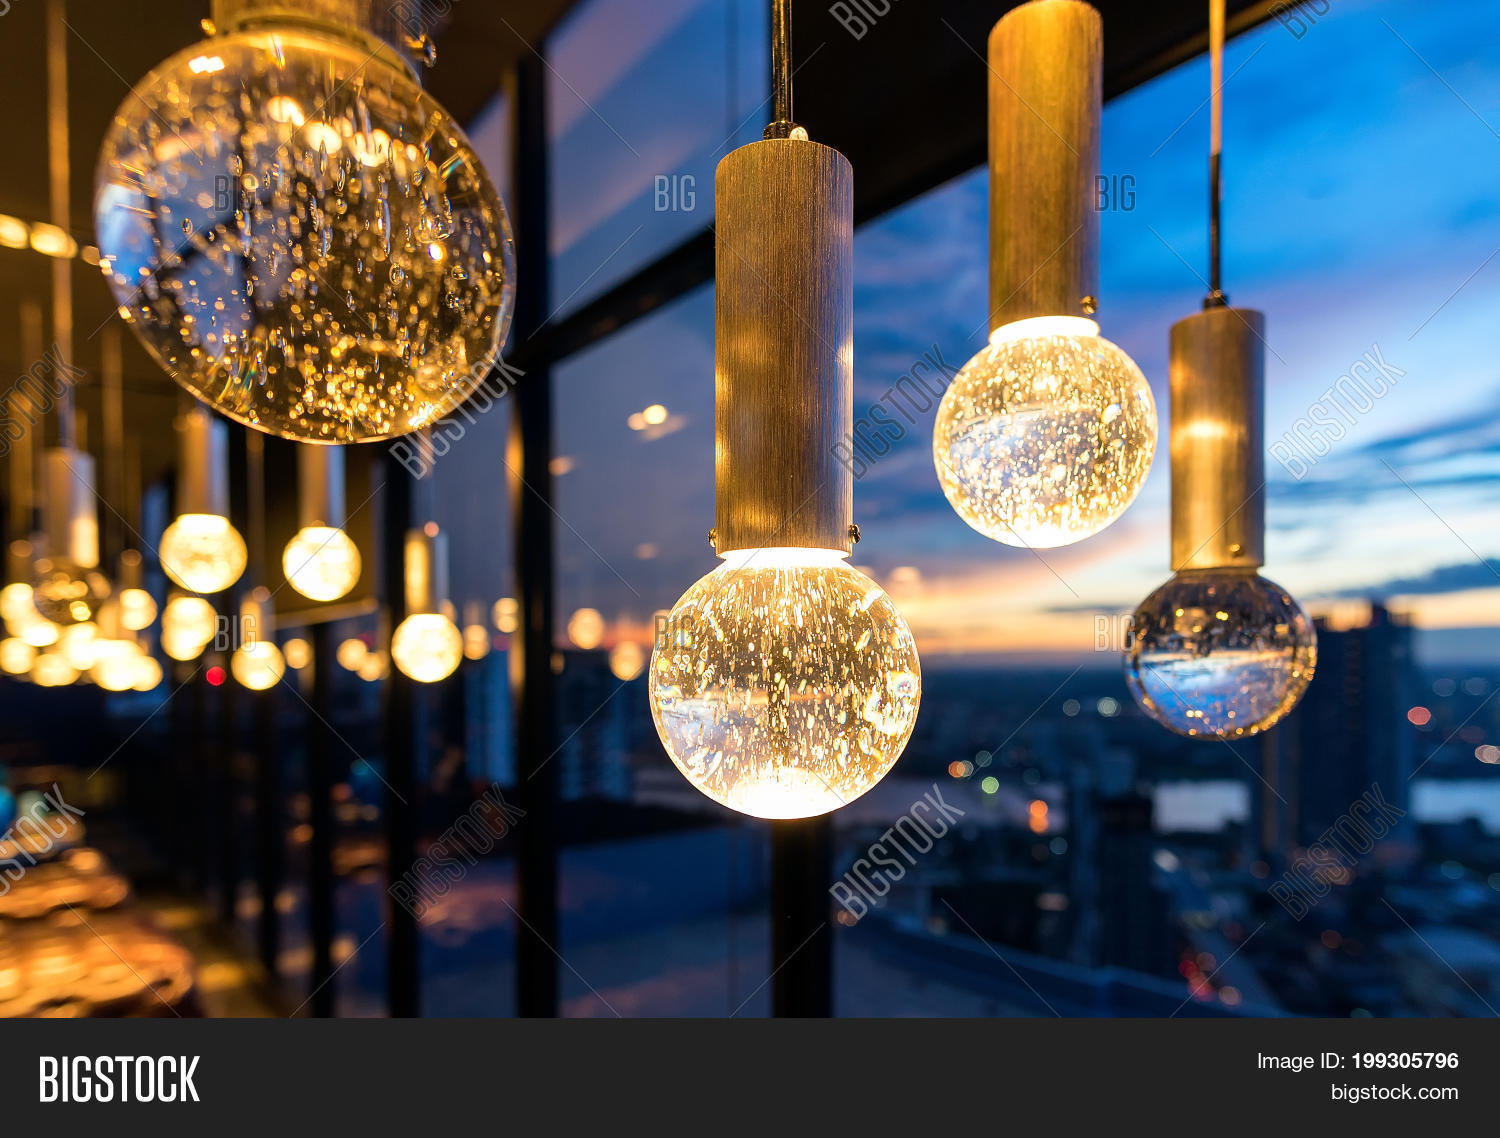 Imagen y foto luxury interiors chandelier light bigstock luxury interiors of chandelier light pattern background at modern building aloadofball Gallery